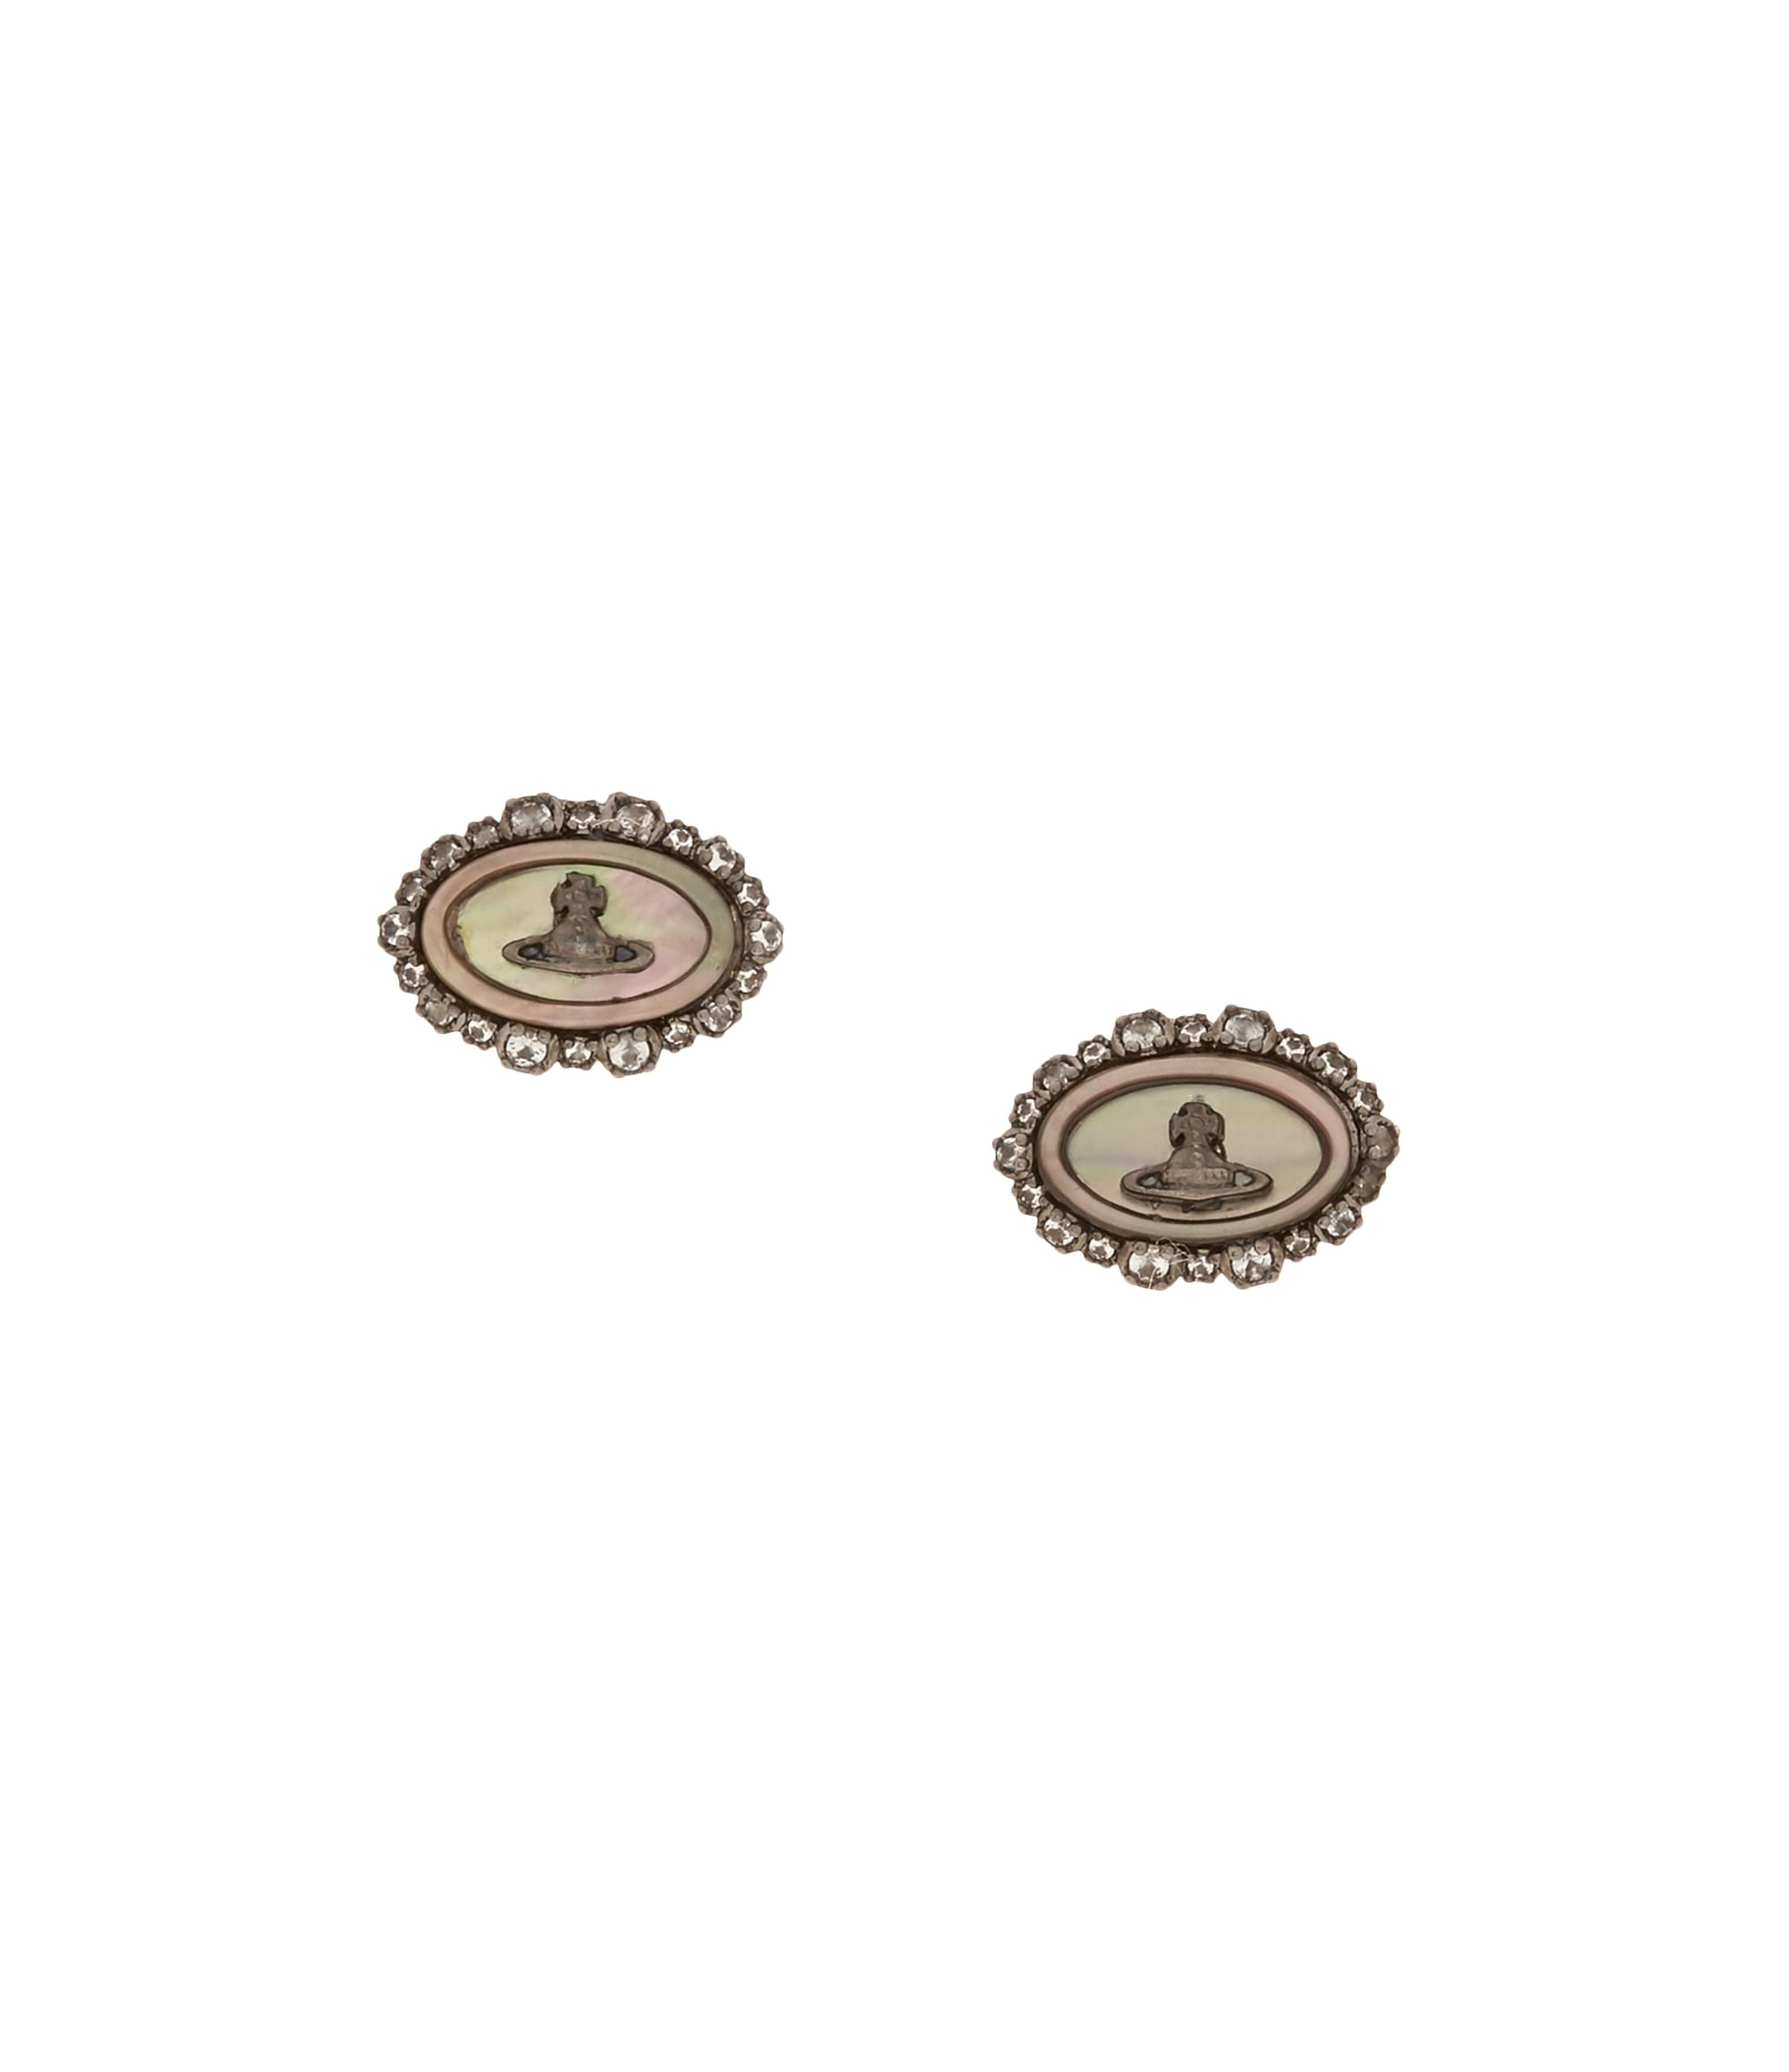 Vivienne Westwood Maja Earrings